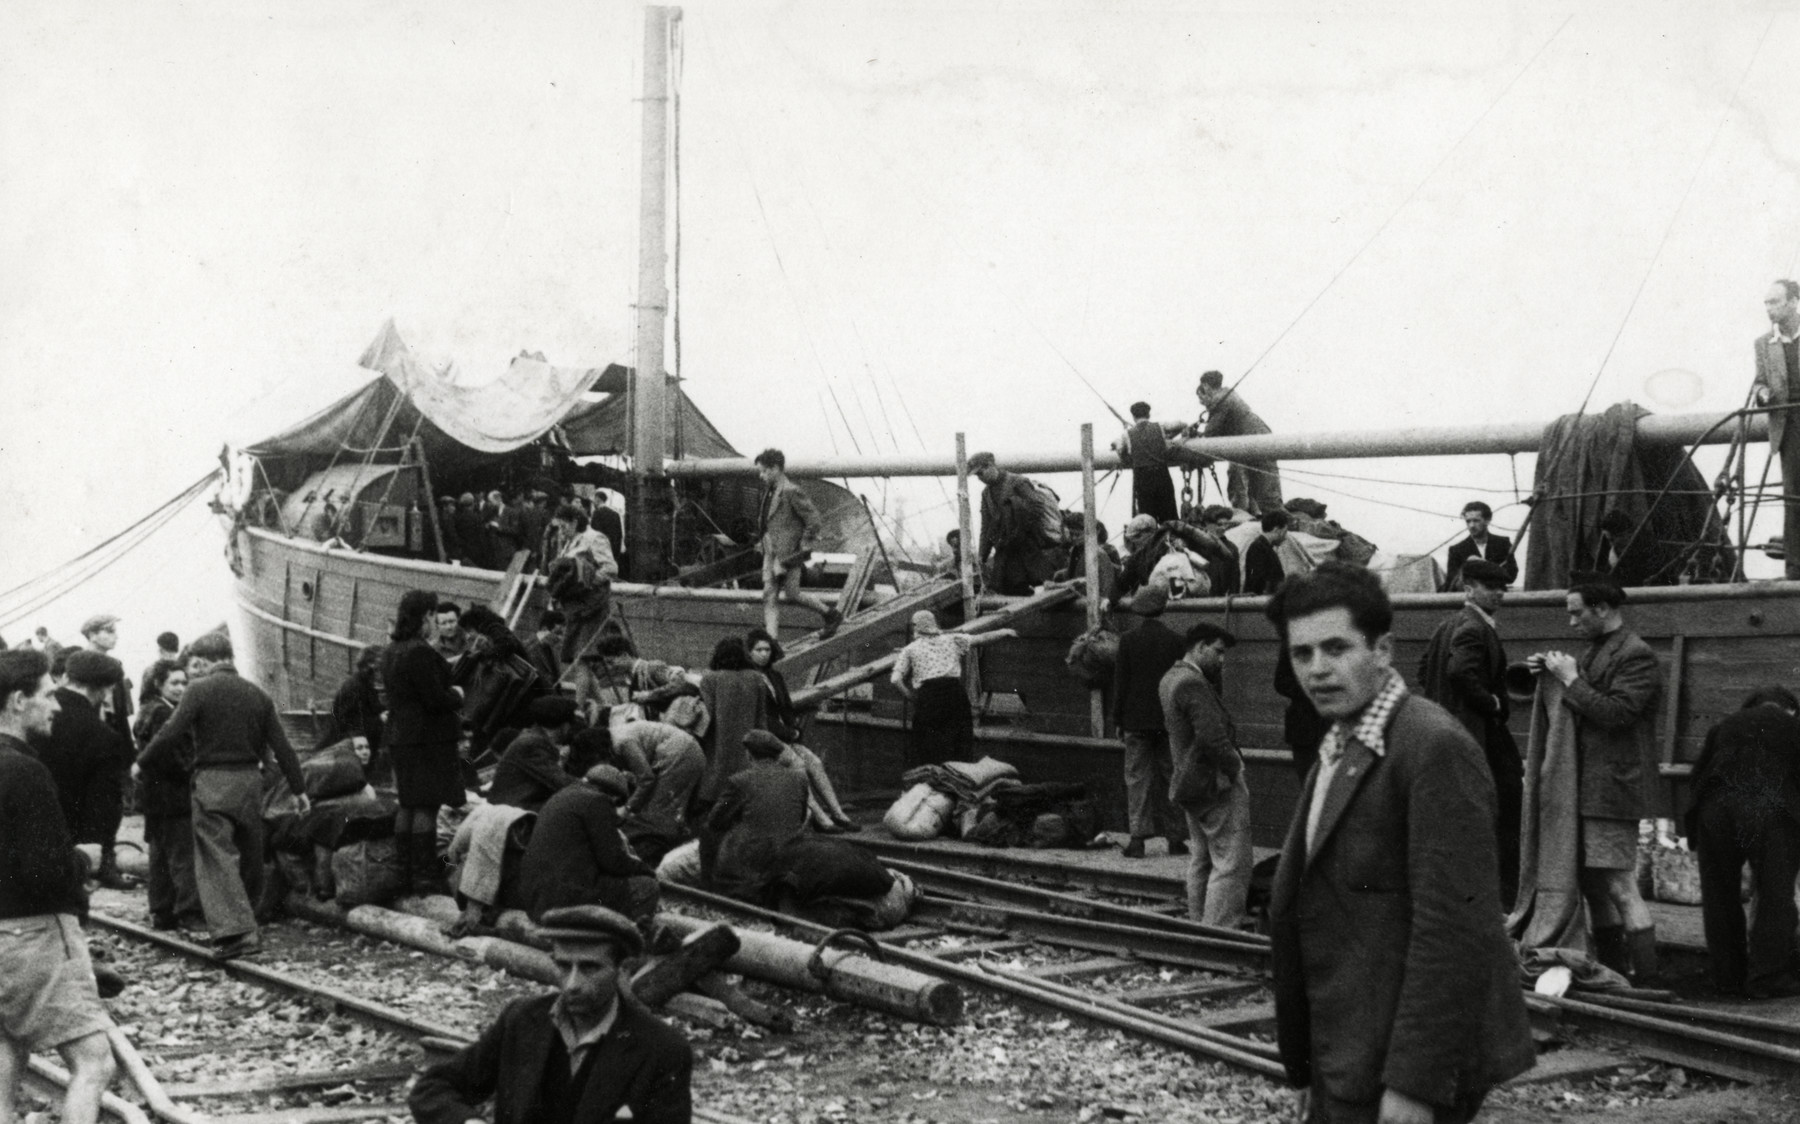 Jewish displaced persons gather at La Spezia harbor where they are conducting a hunger strike to garner support for their desire to immigrate to Palestine.